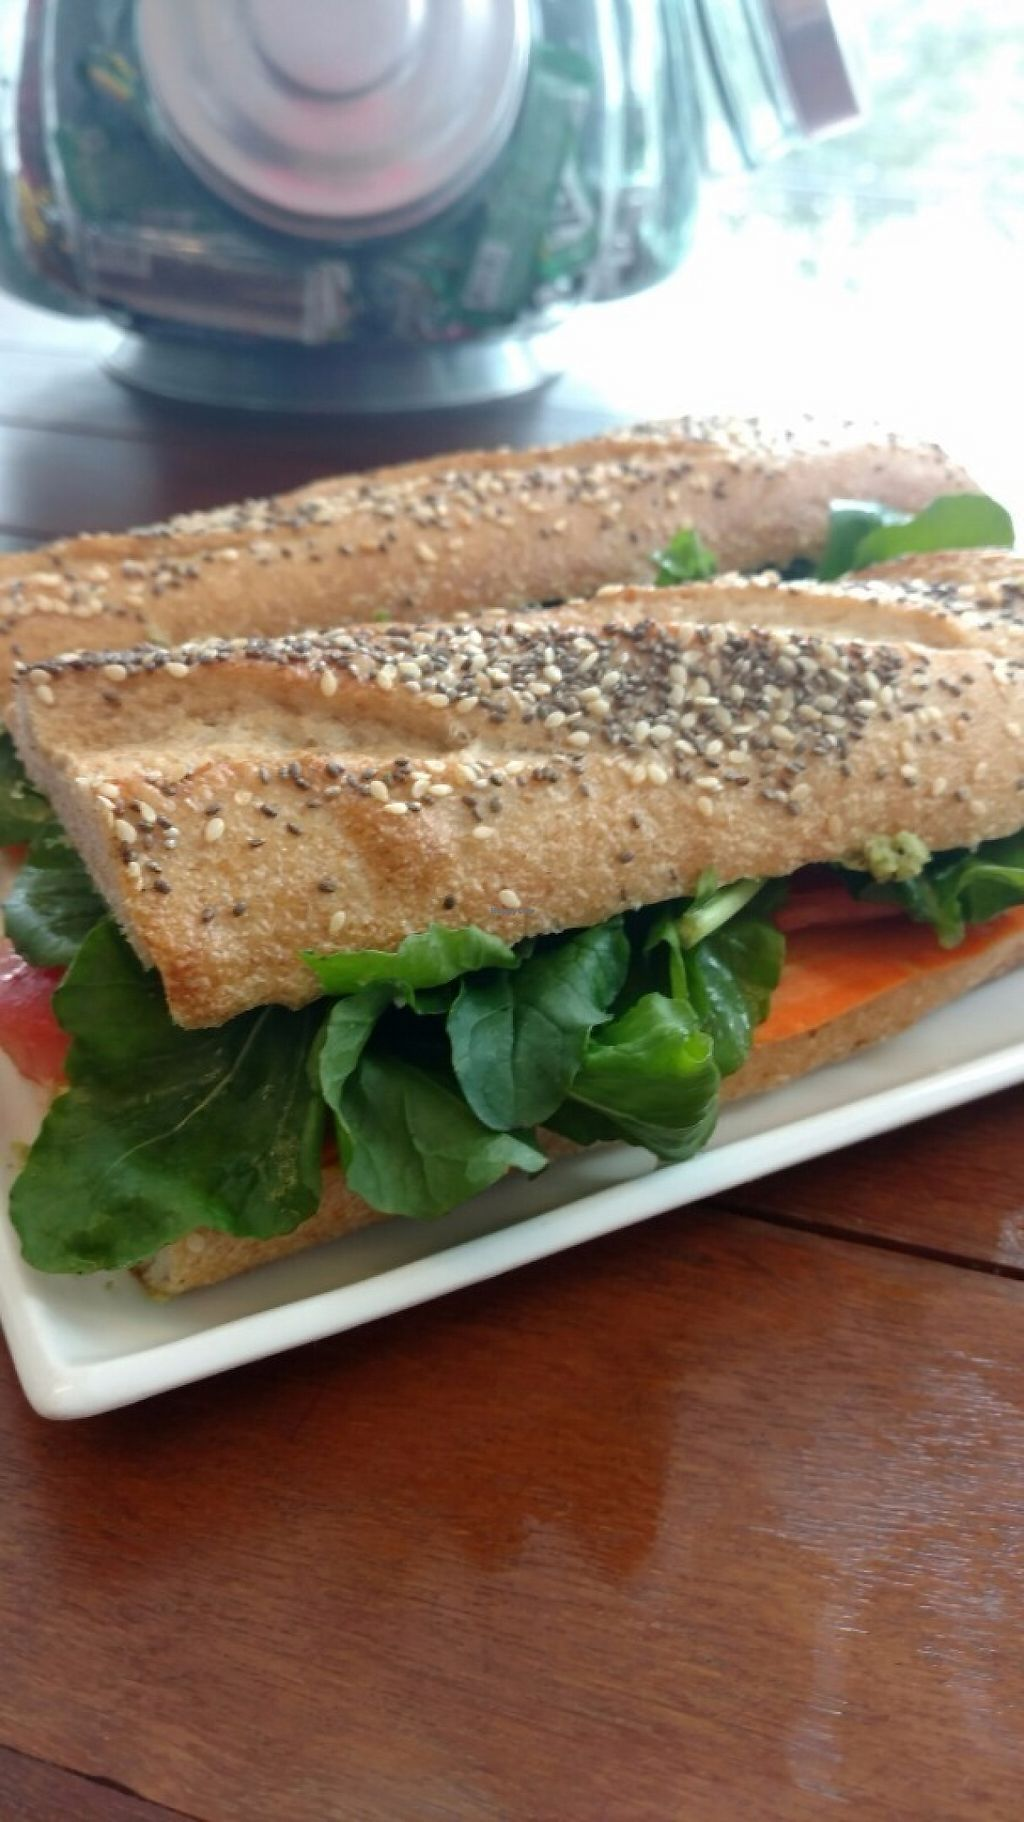 """Photo of Cafe da Krause  by <a href=""""/members/profile/augustokrause"""">augustokrause</a> <br/>Baguete Vegan! <br/> May 22, 2017  - <a href='/contact/abuse/image/92552/261335'>Report</a>"""